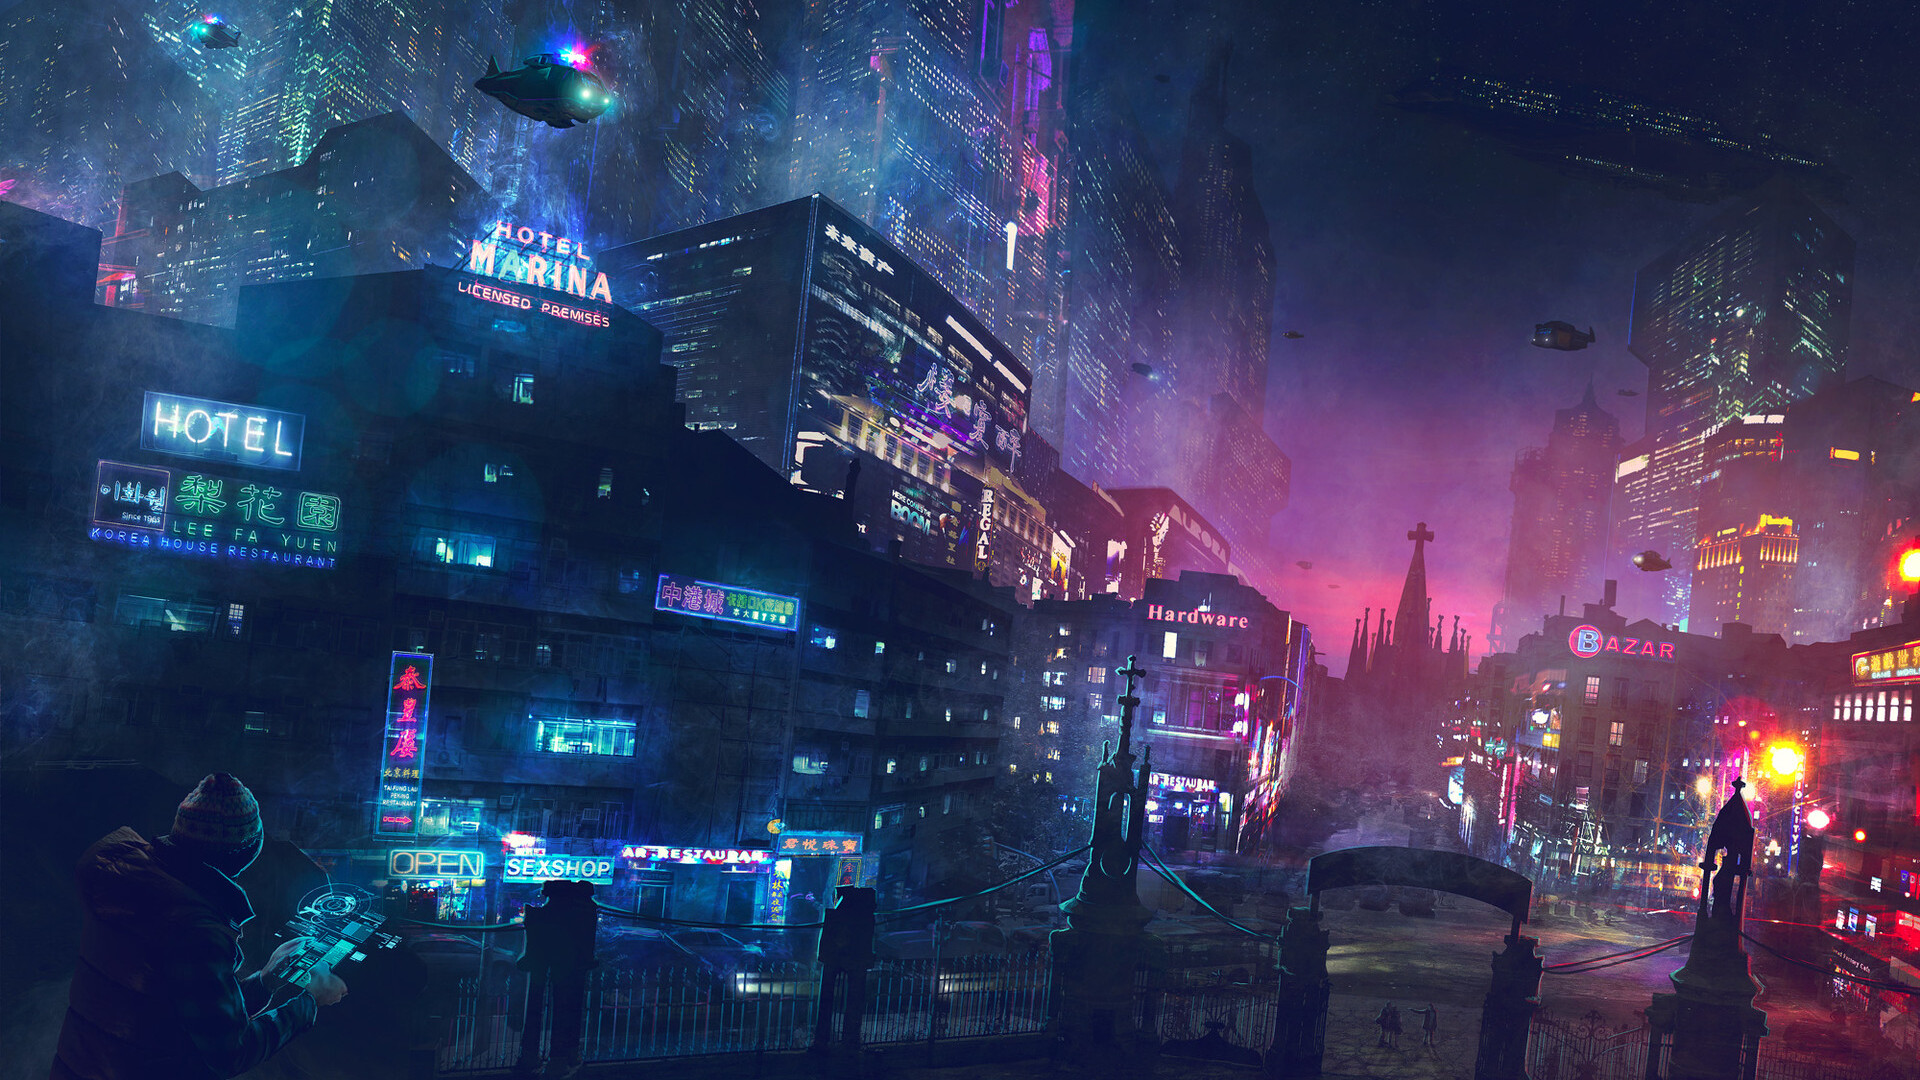 1920x1080 cyberpunk artwork laptop full hd 1080p hd 4k wallpapers cyberpunk artwork 69g voltagebd Choice Image